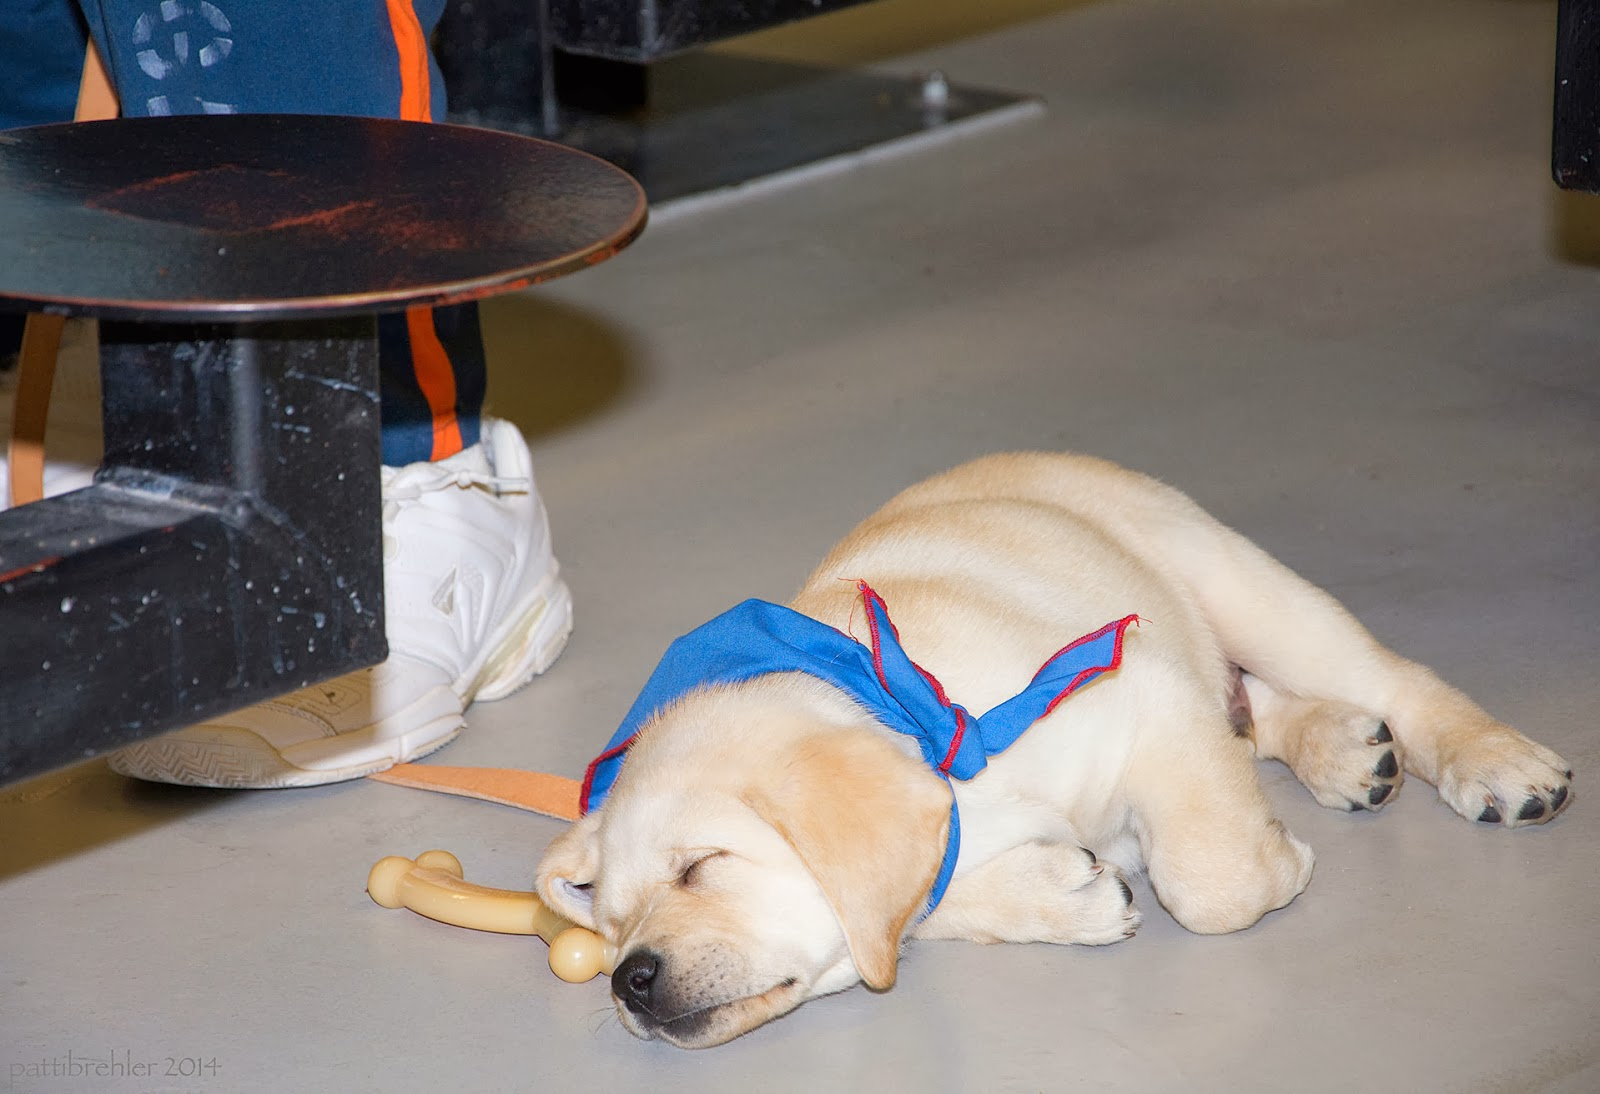 A small yellow lab puppy is asleep on a tan floor next to a stool and a man's leg. A nylabone toy is lying net to the puppy's head. The puppy is wearing a blue bandana.